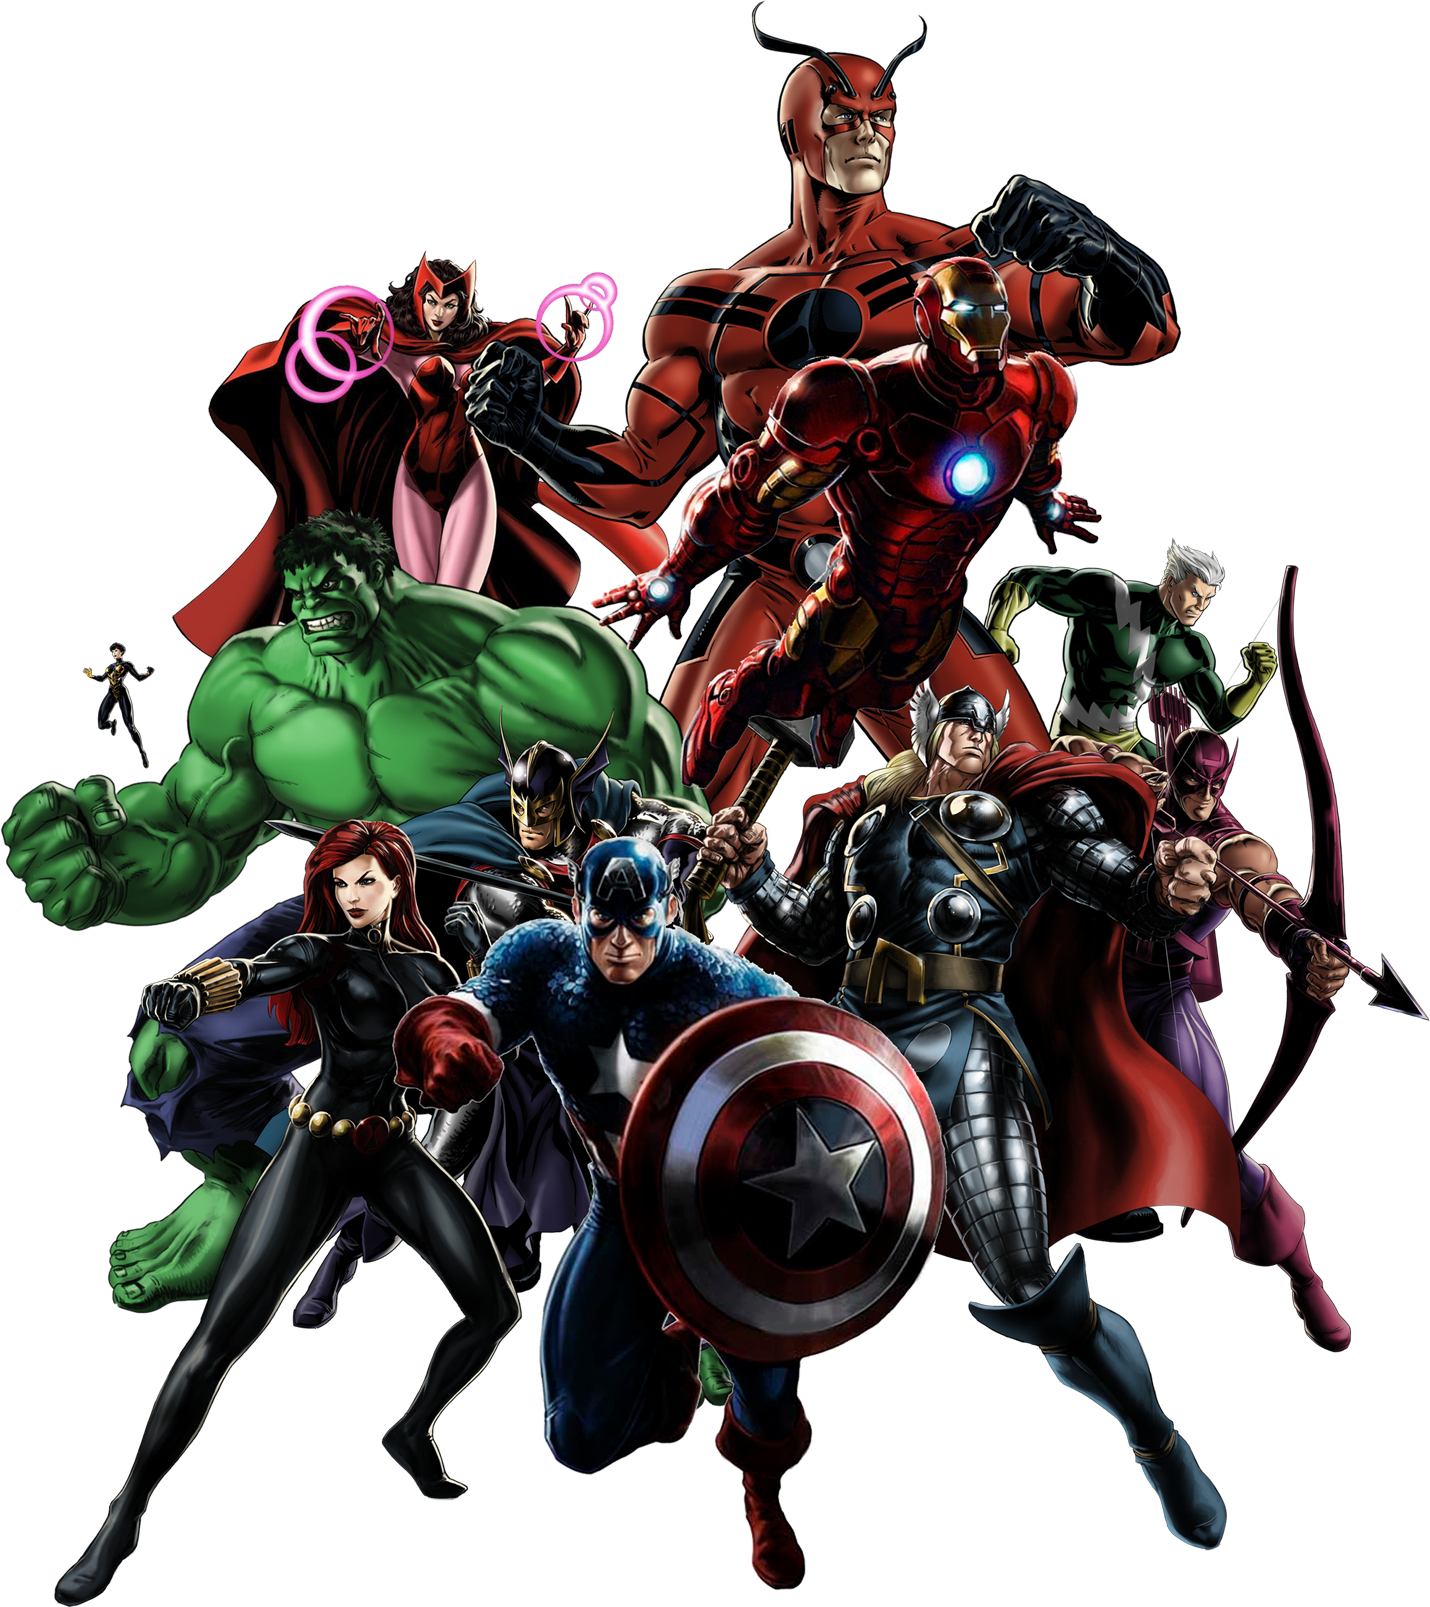 Hd Marvel Png - Avengers HD PNG Transparent Avengers HD.PNG Images. | PlusPNG